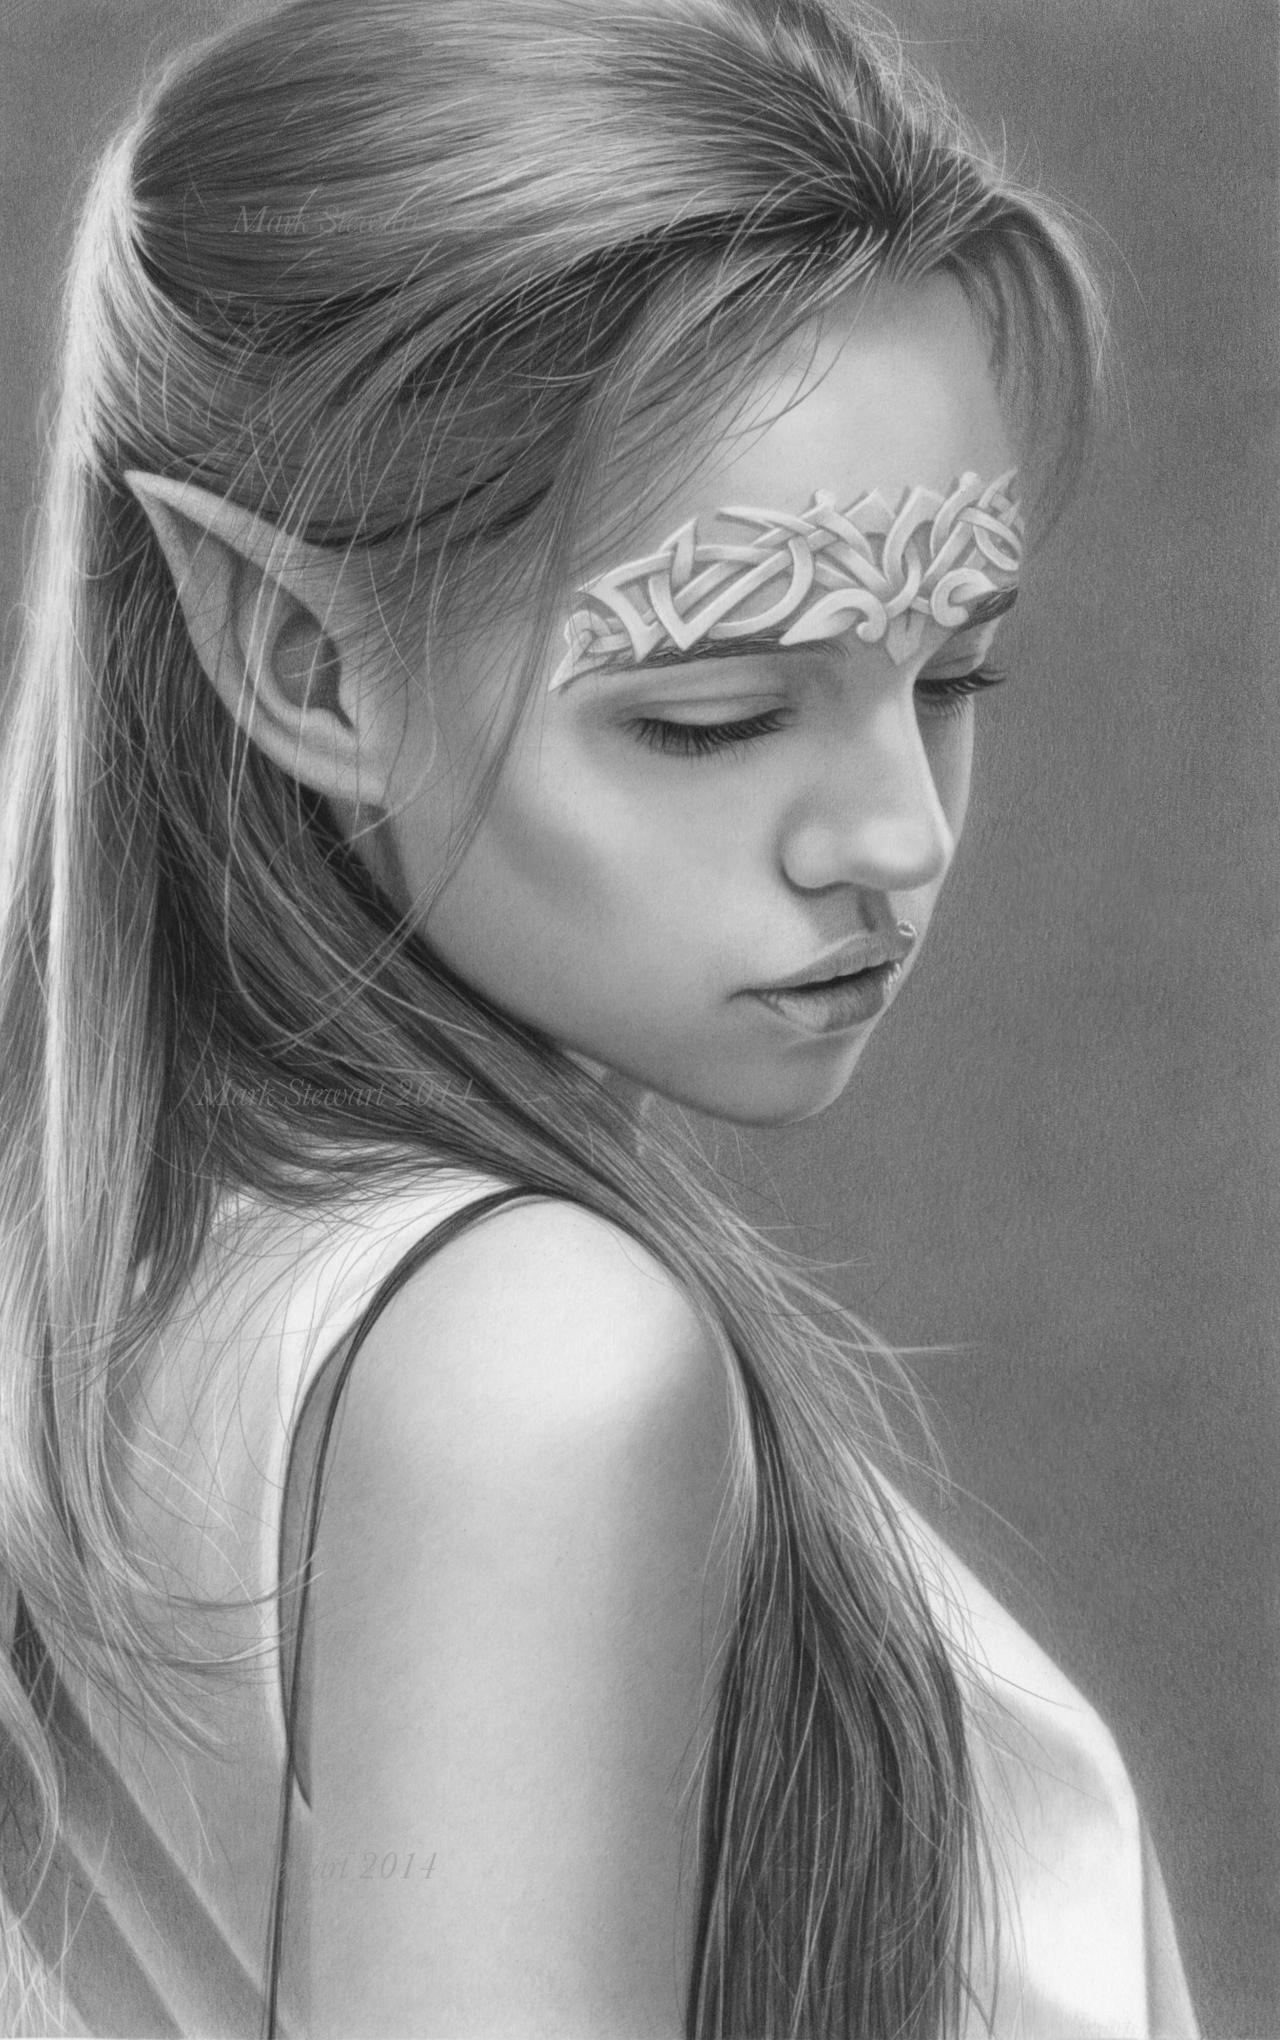 Elf by markstewart